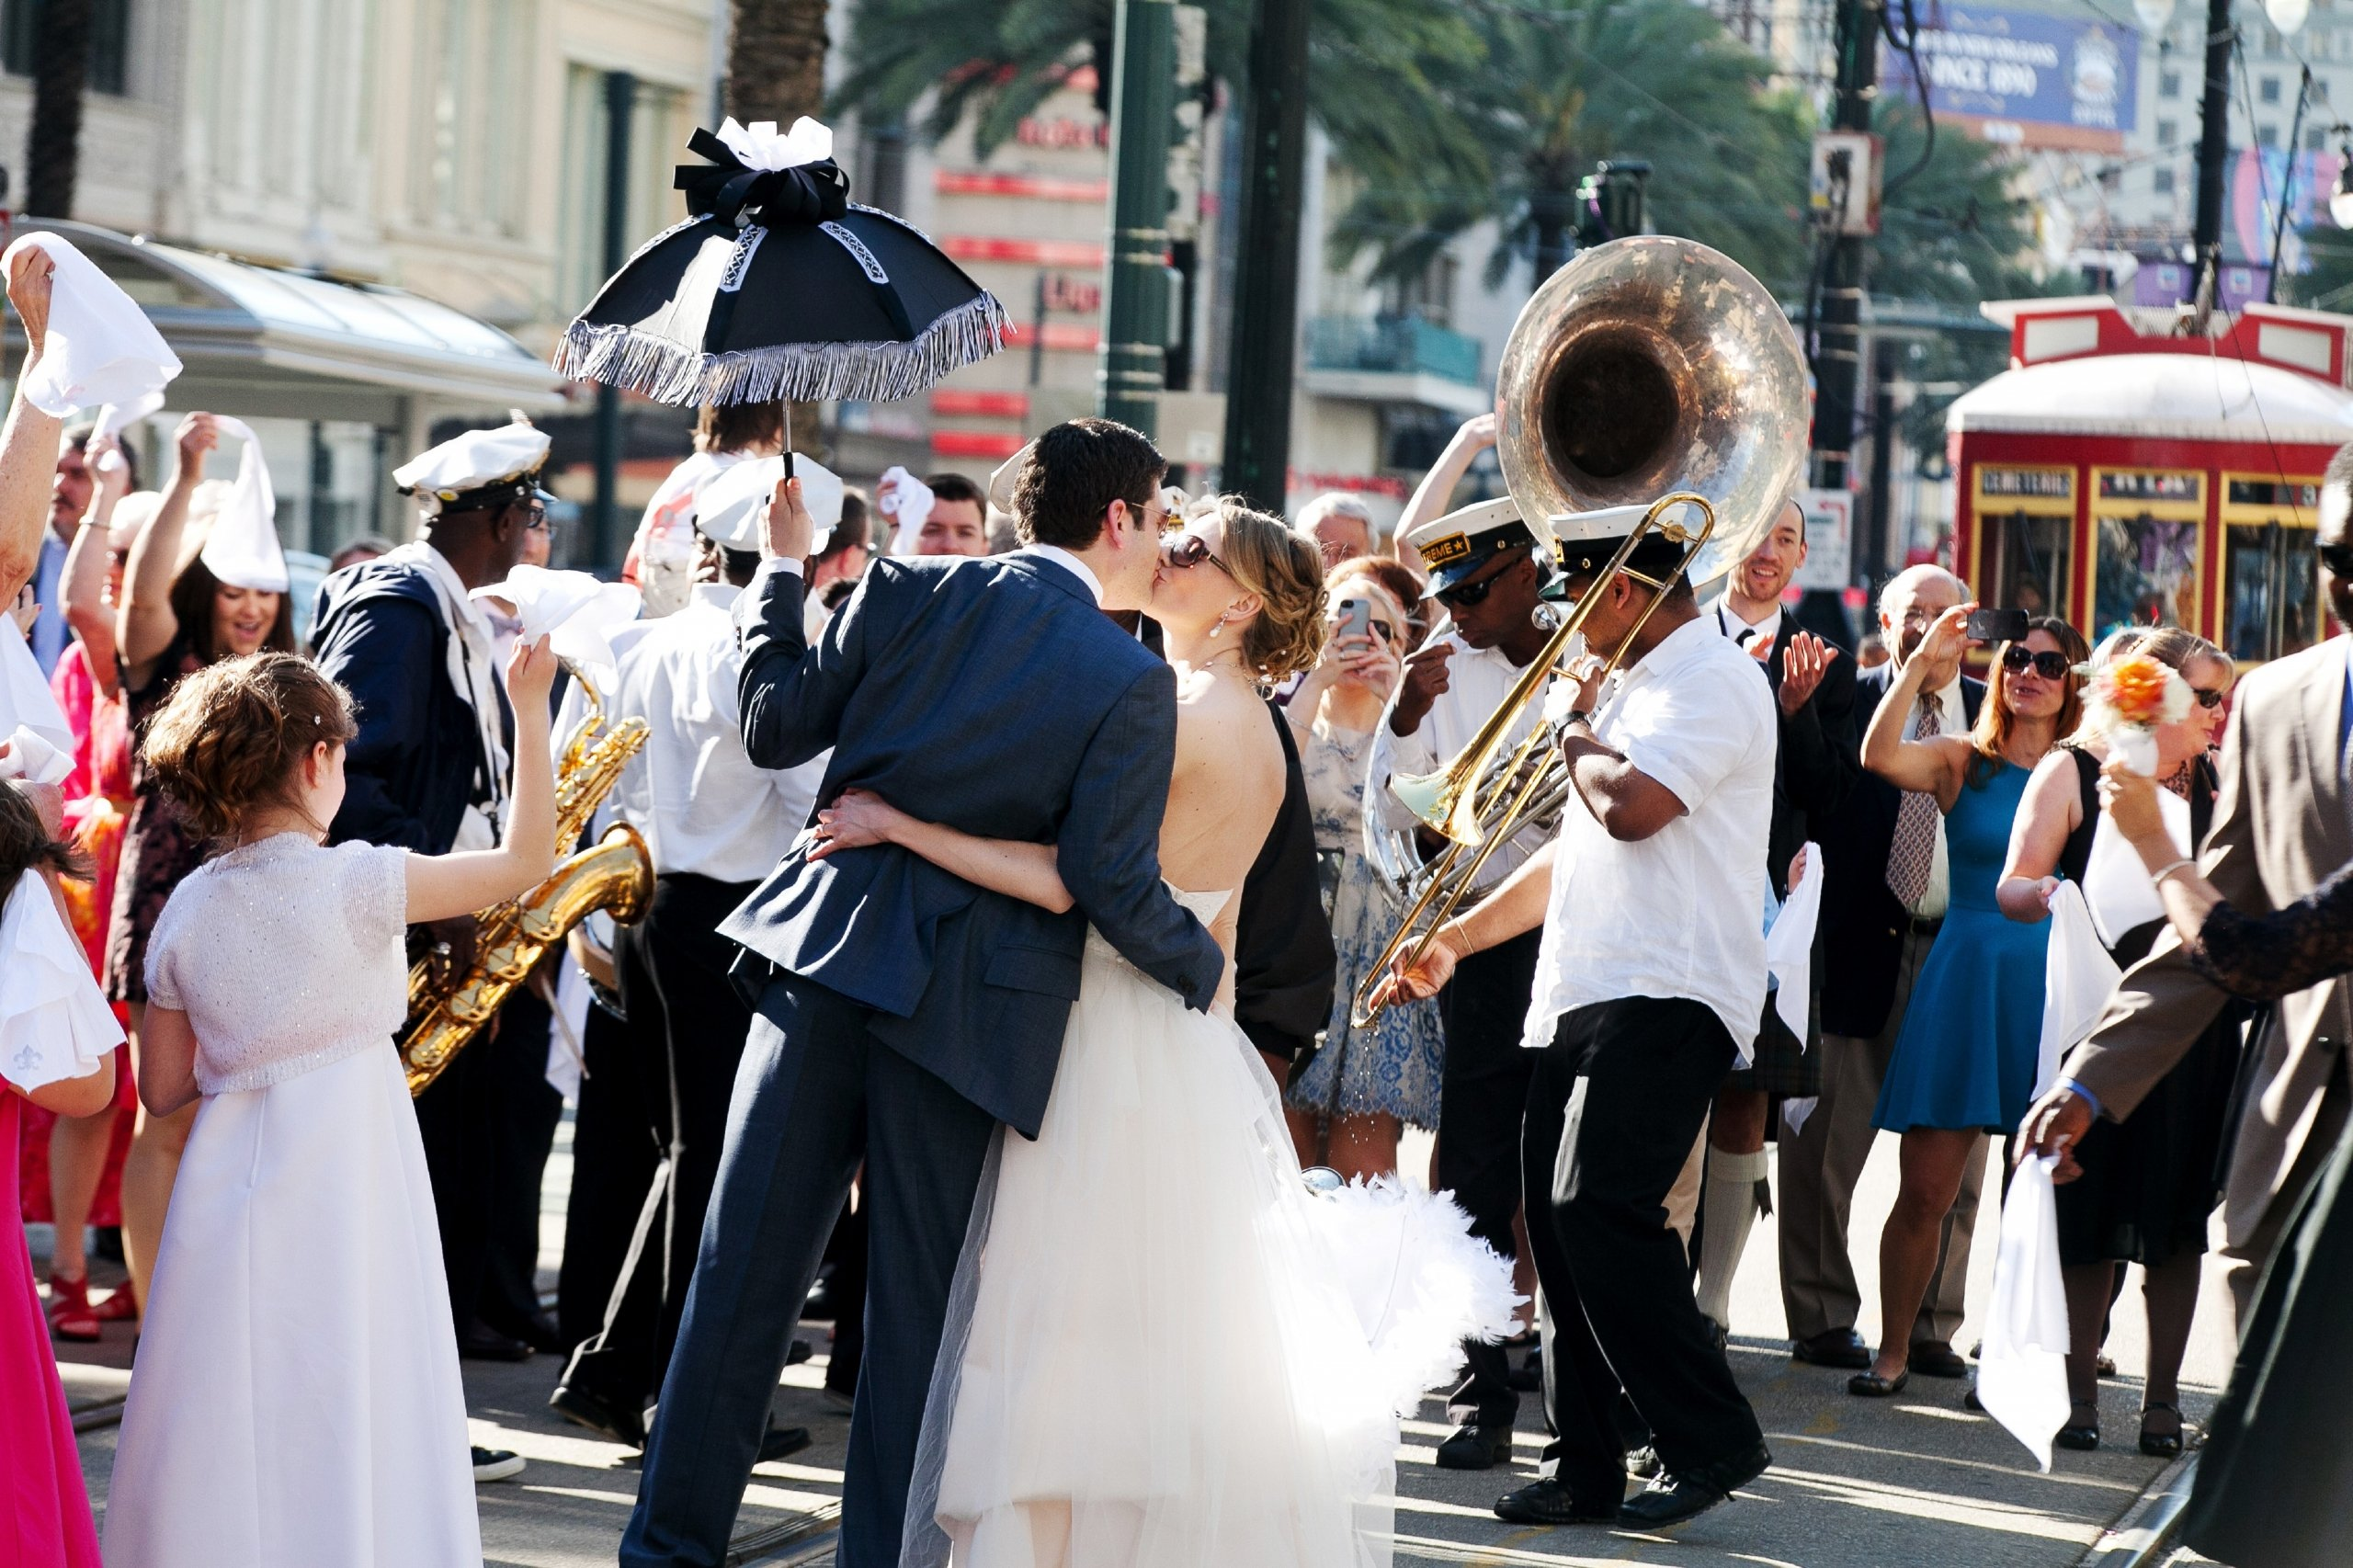 A bride and groom kissing on a New Orleans street